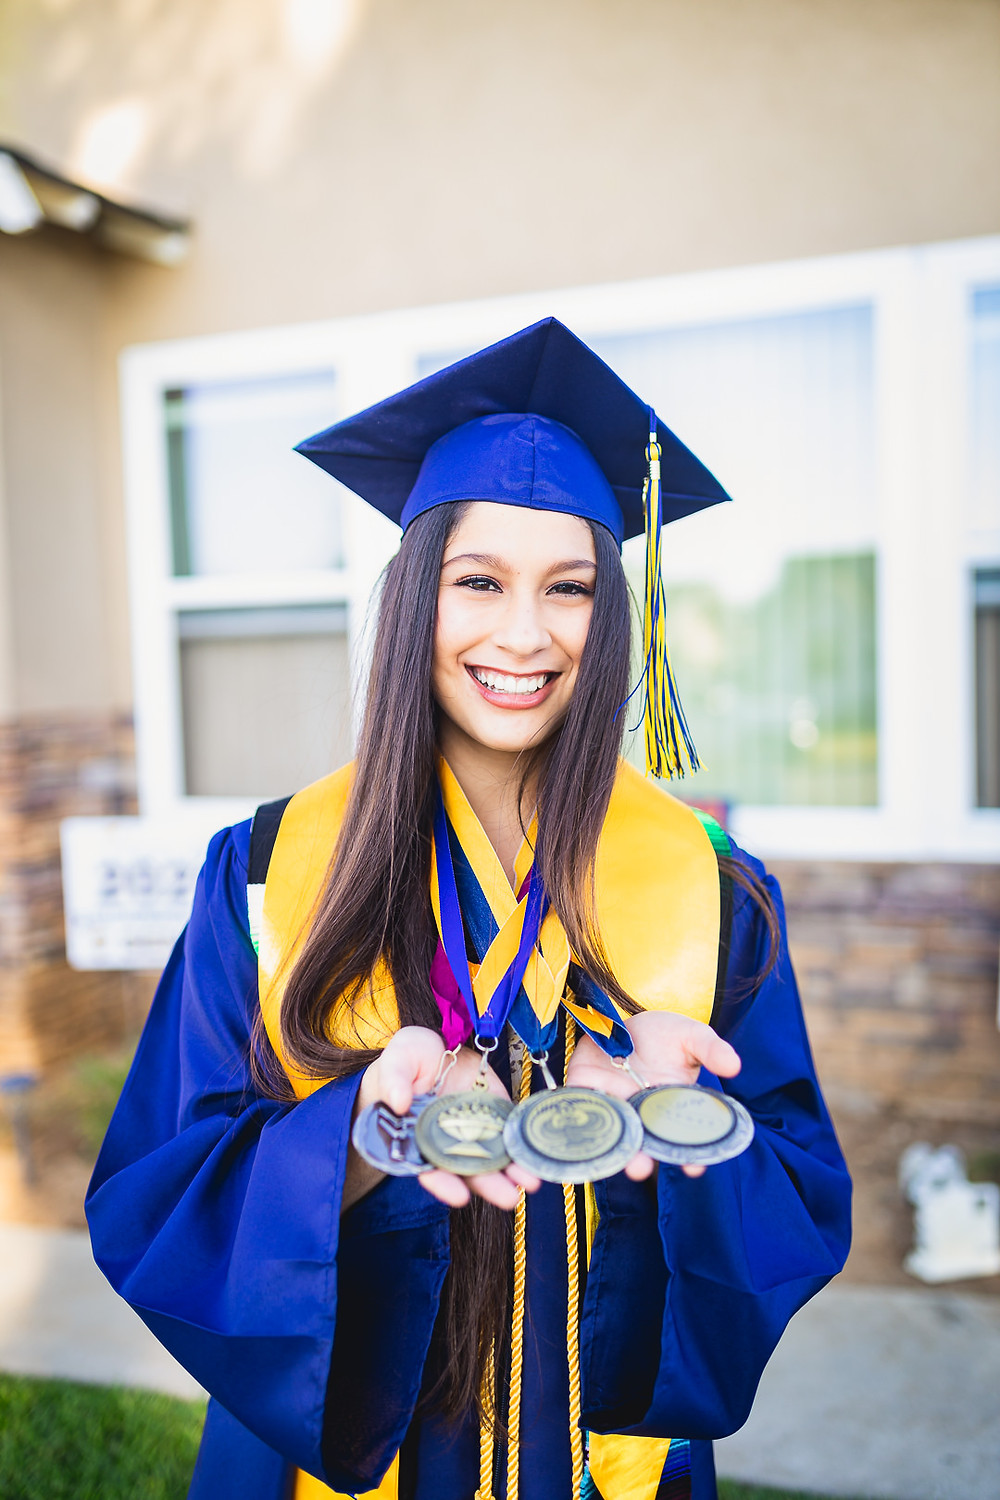 California High School Senior Photos Showing Medals